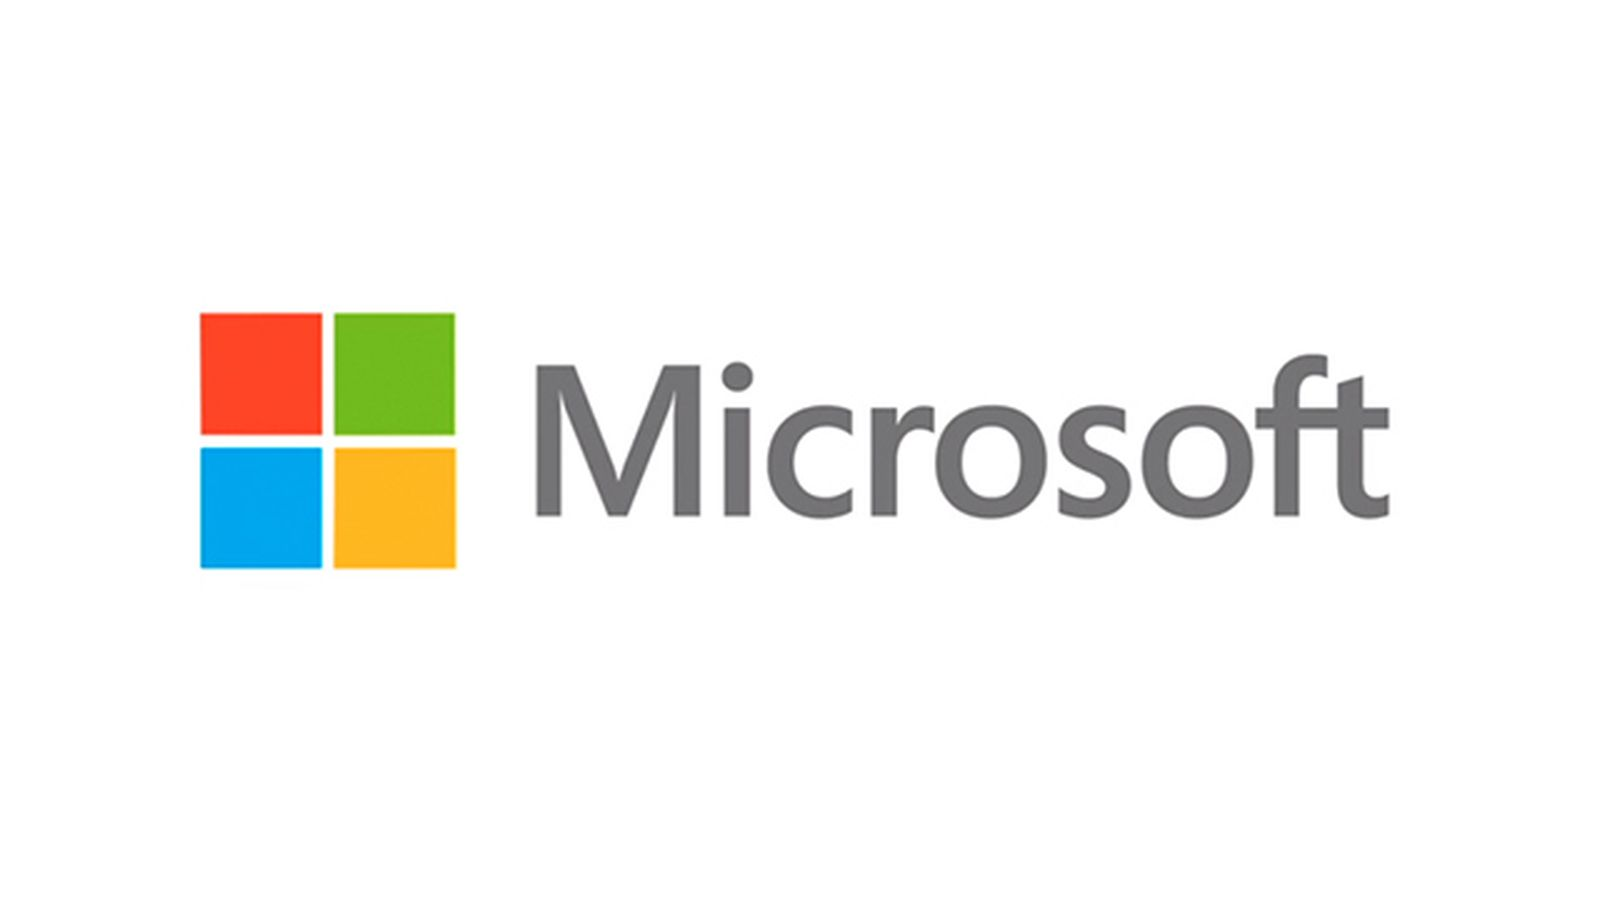 Microsoft unveils its new logo, the first major change in 25 years ...